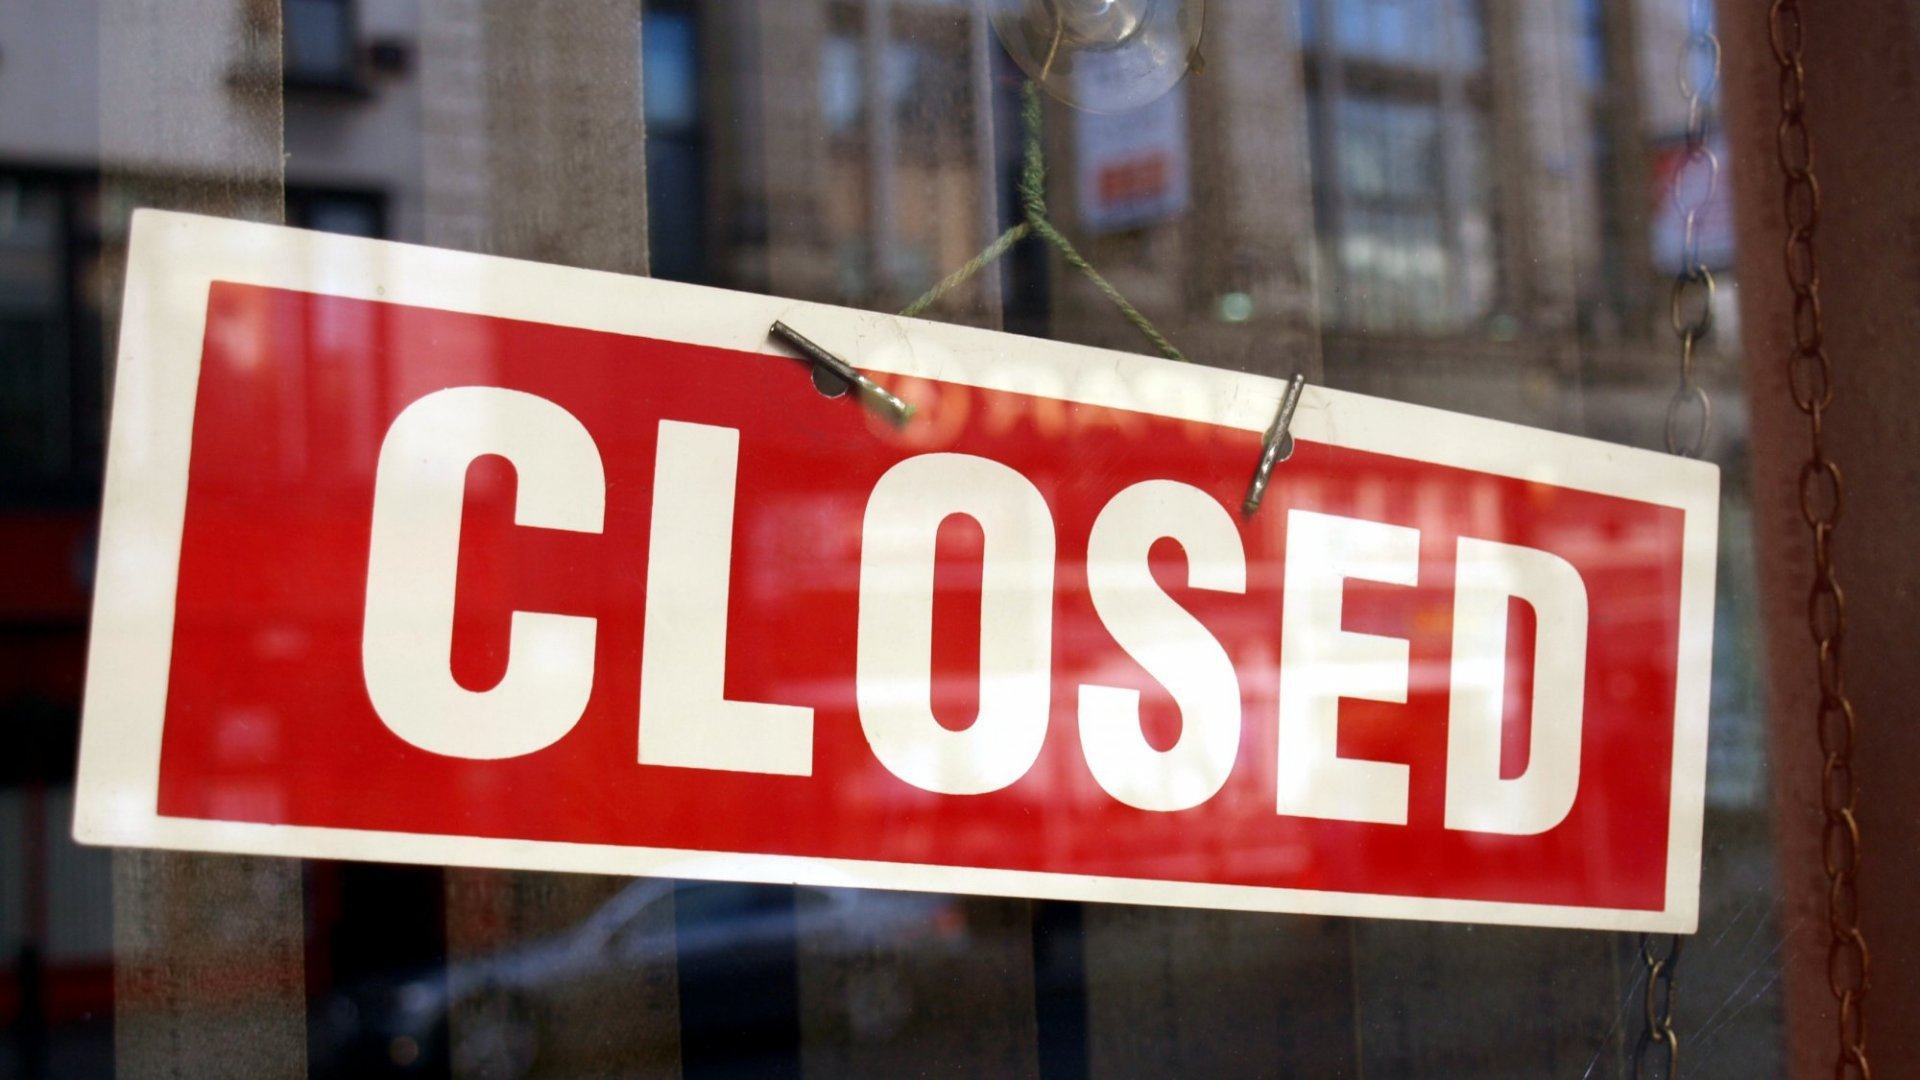 The Best Way to Keep Your Startup Going? Think Seriously About Shutting It Down